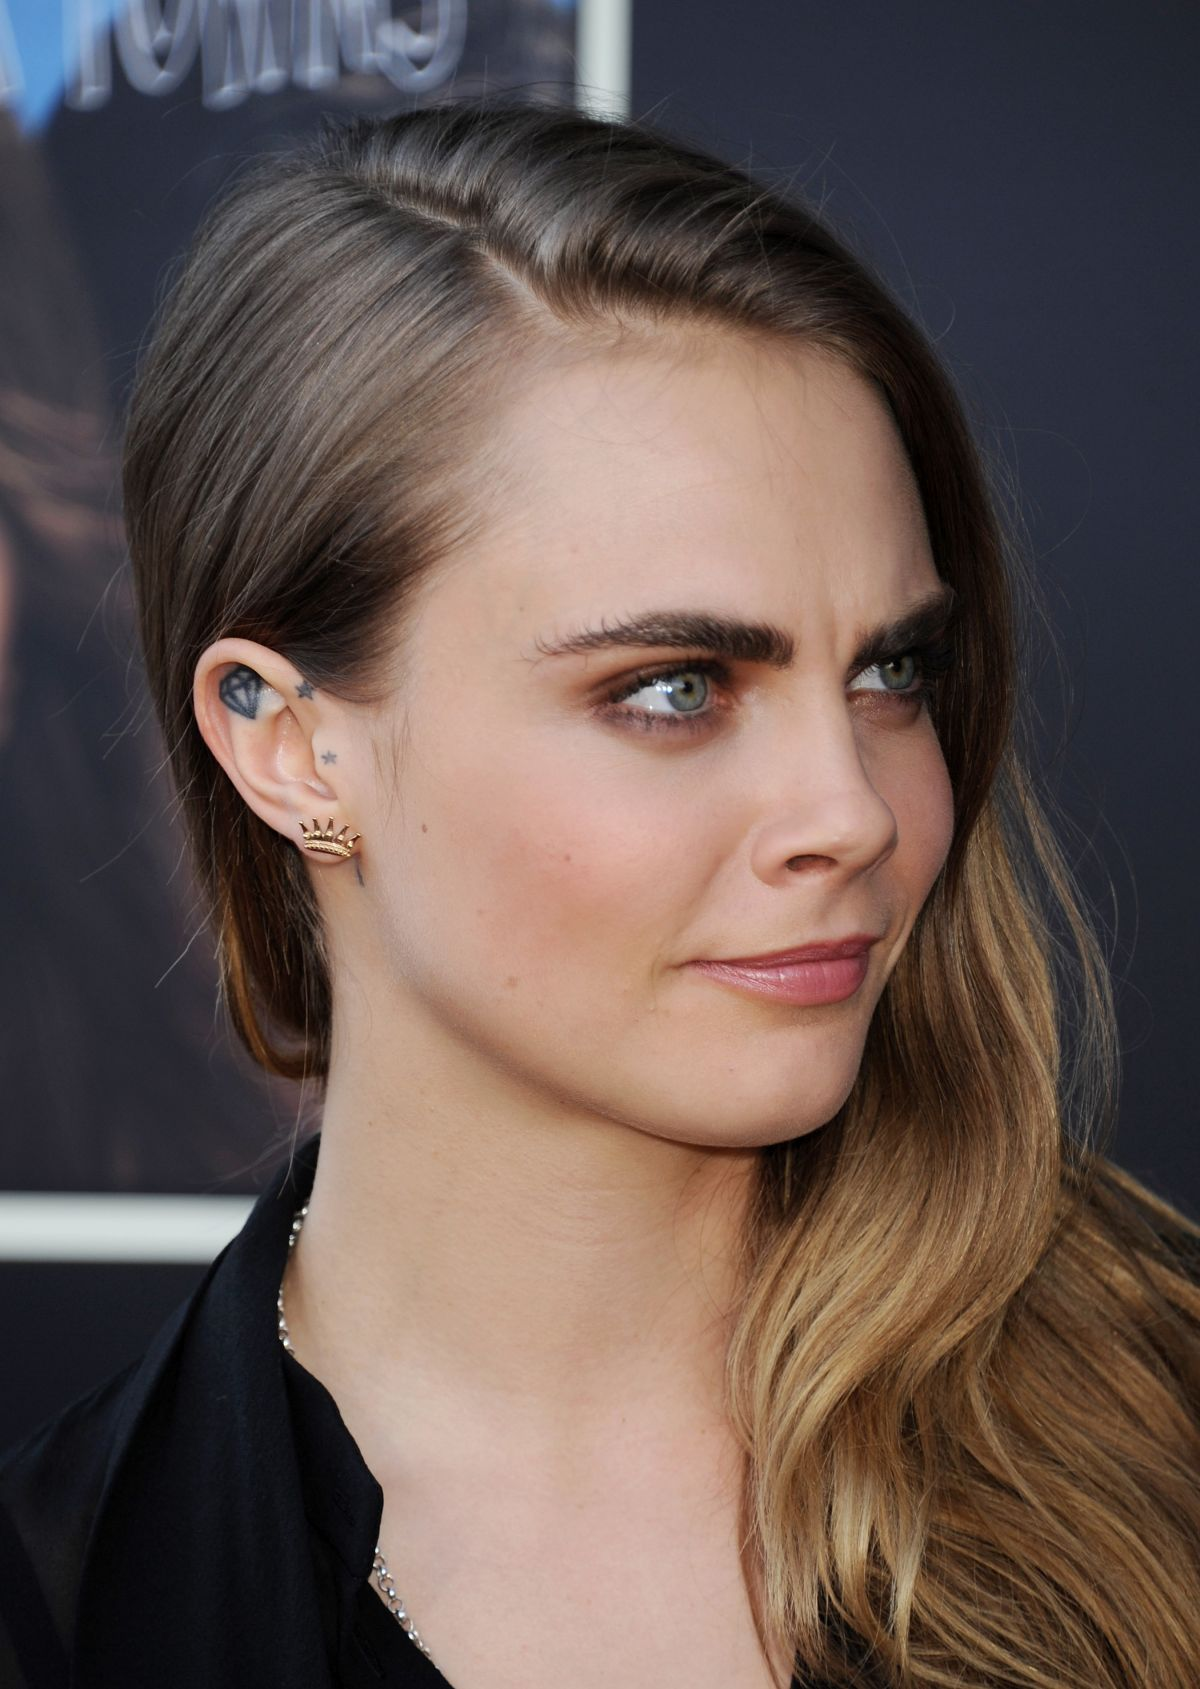 Youtube Cara Delevingne nudes (32 photo), Pussy, Is a cute, Instagram, lingerie 2015